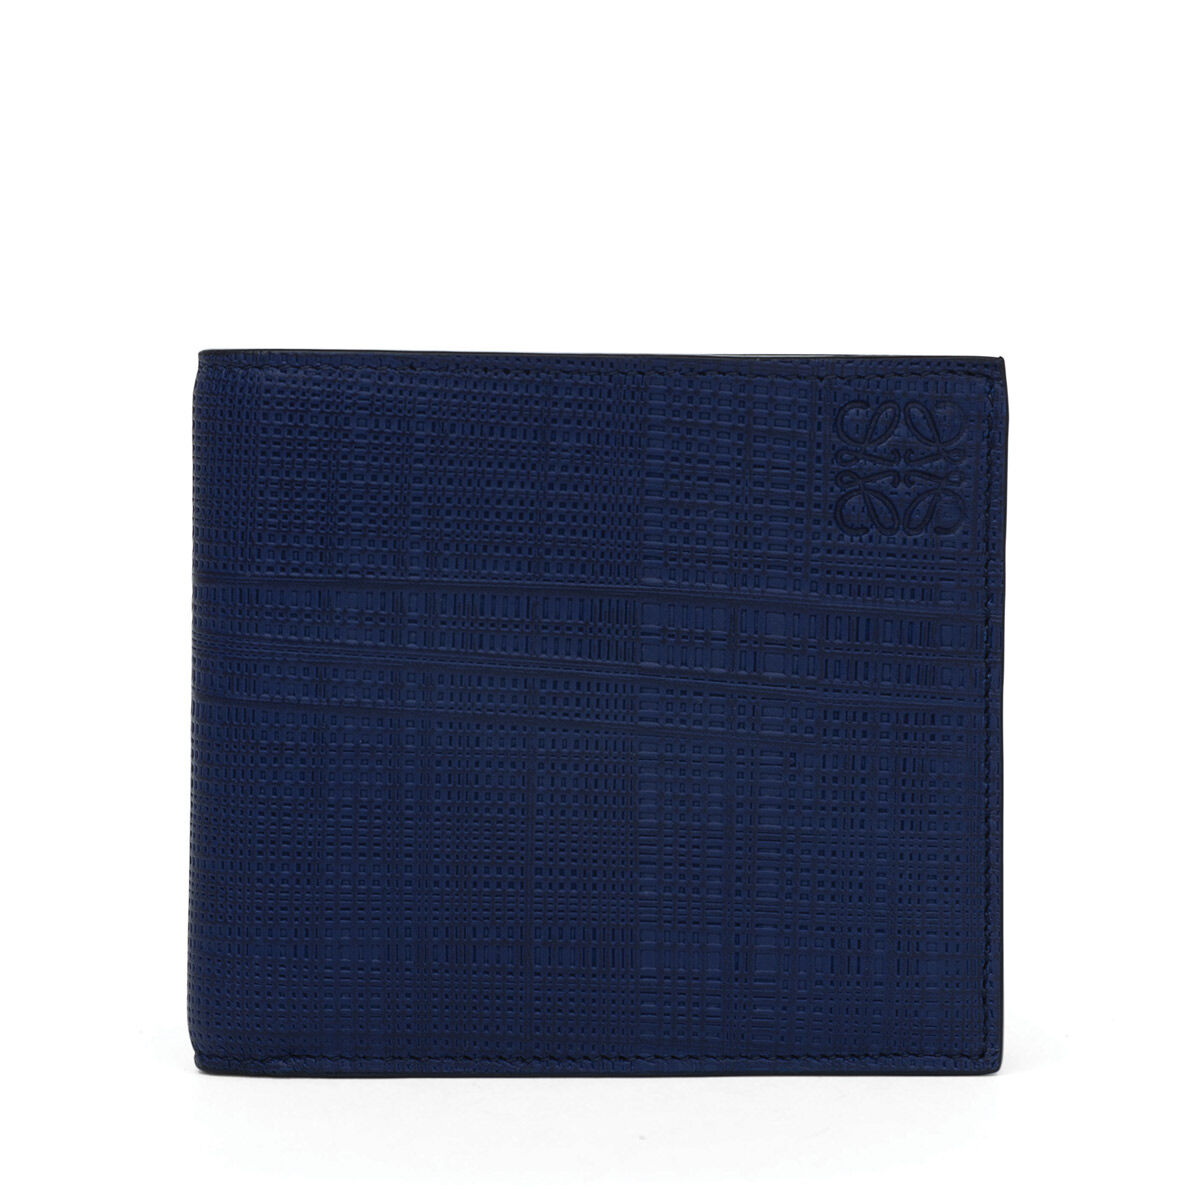 LOEWE Bifold/Coin Wallet Navy Blue all